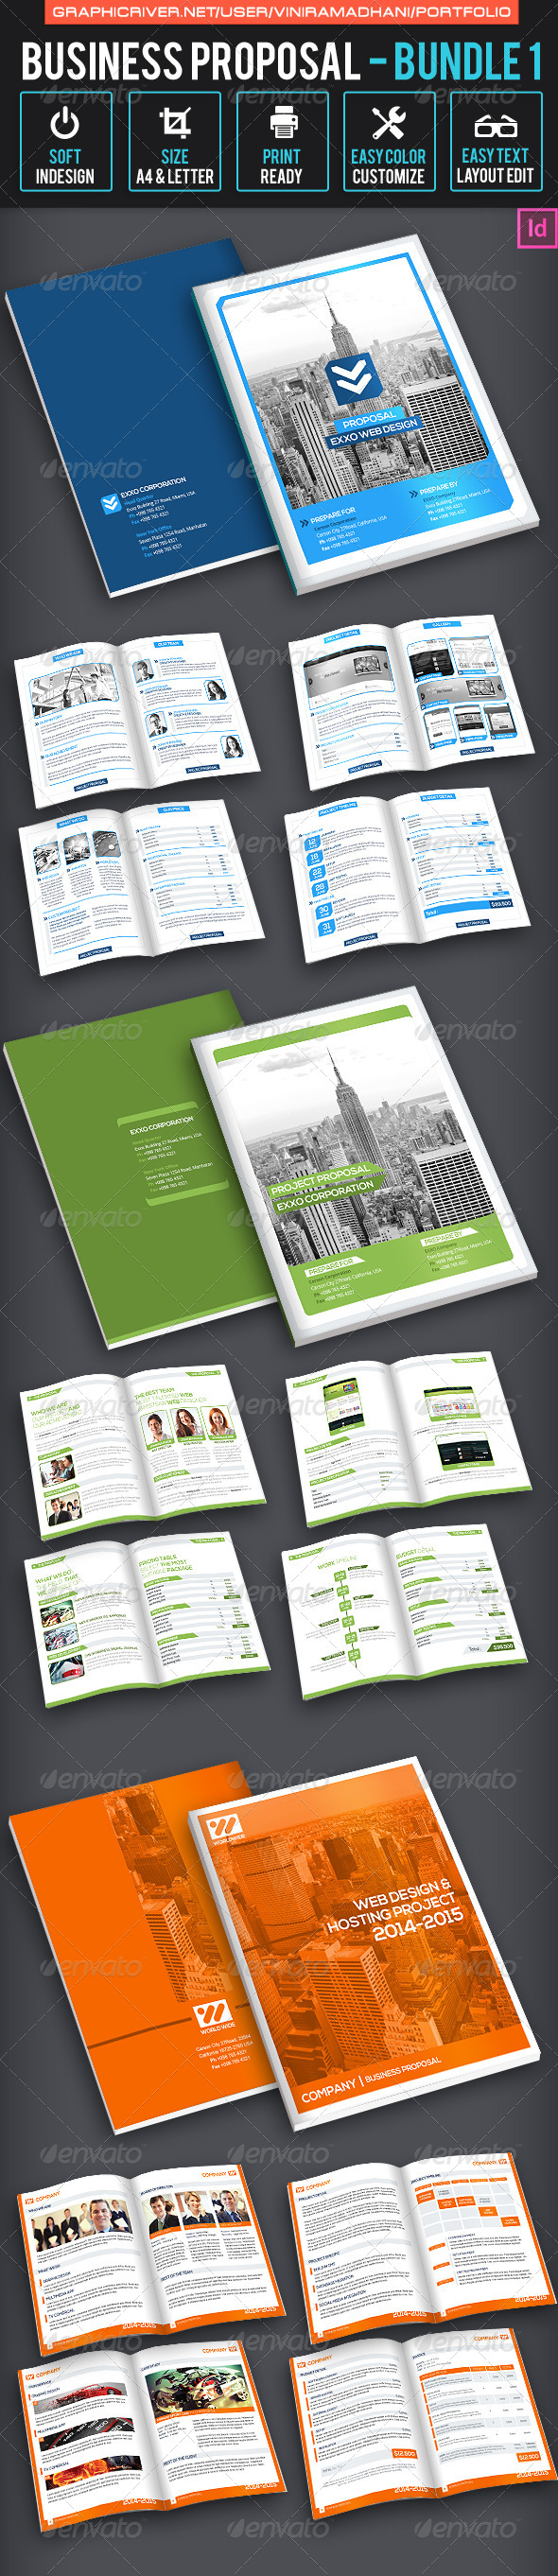 Business Proposal Bundle 1 - Proposals & Invoices Stationery